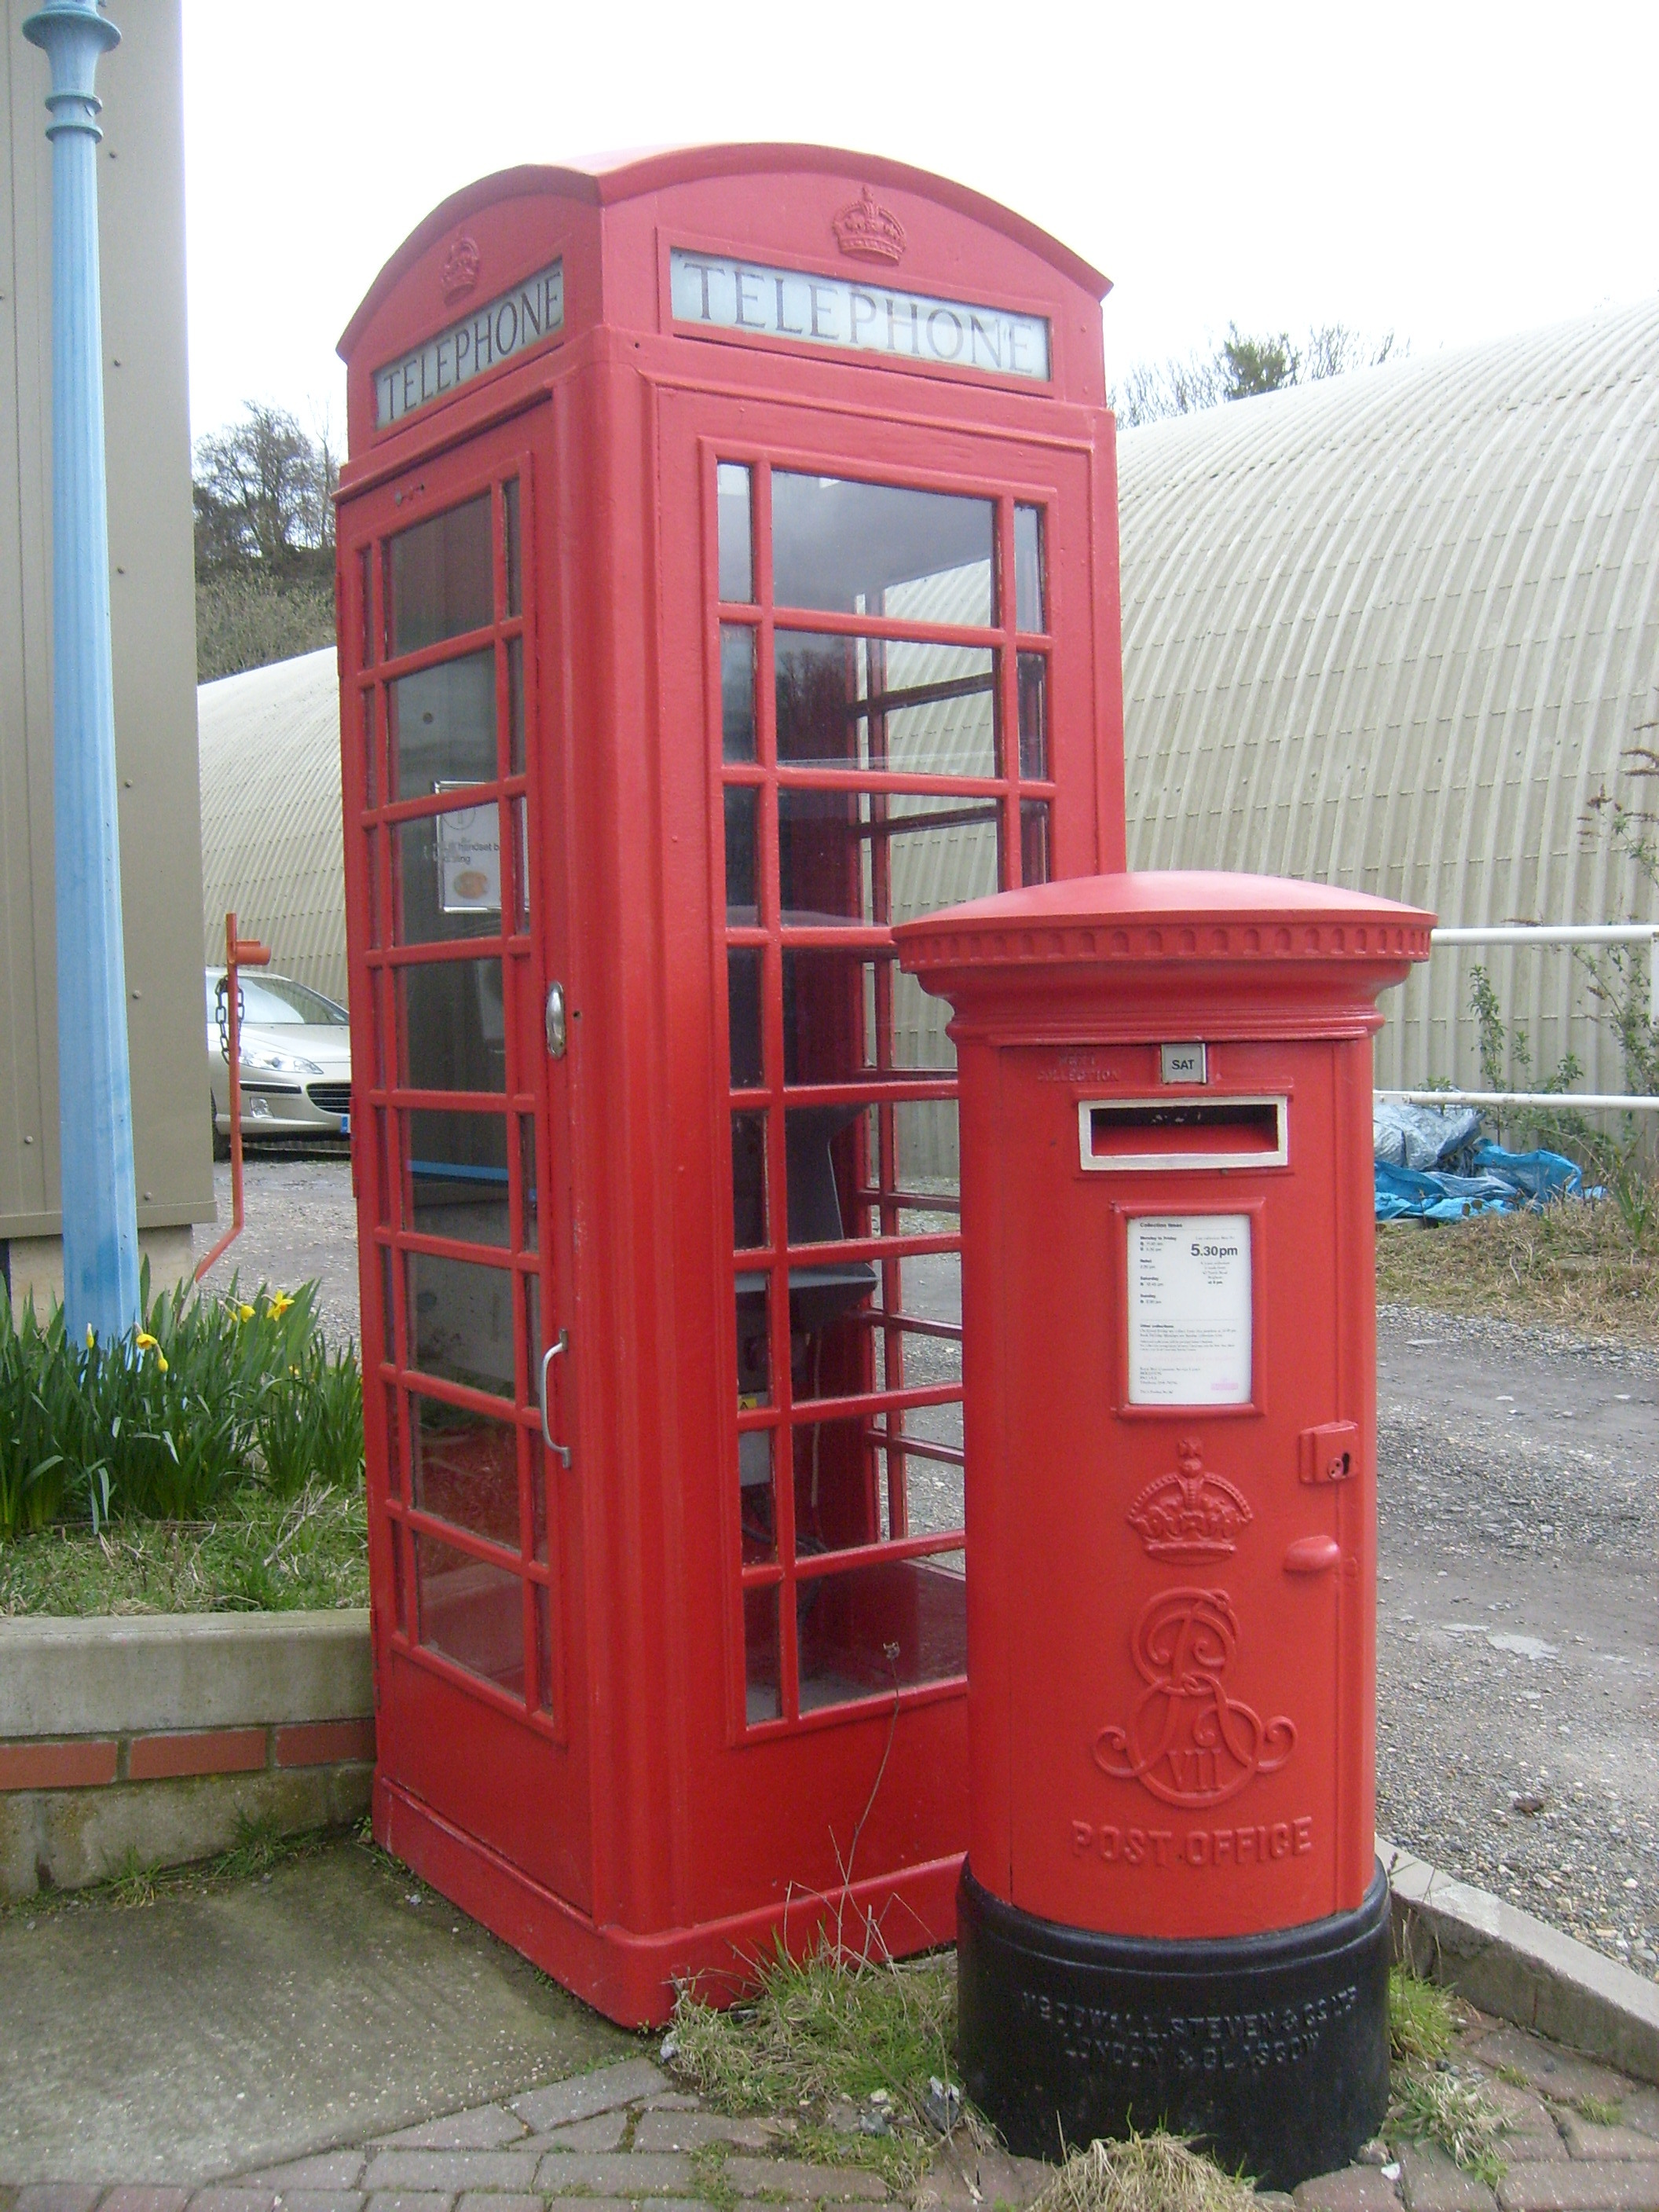 phone booth English Telephone HD Wallpaper